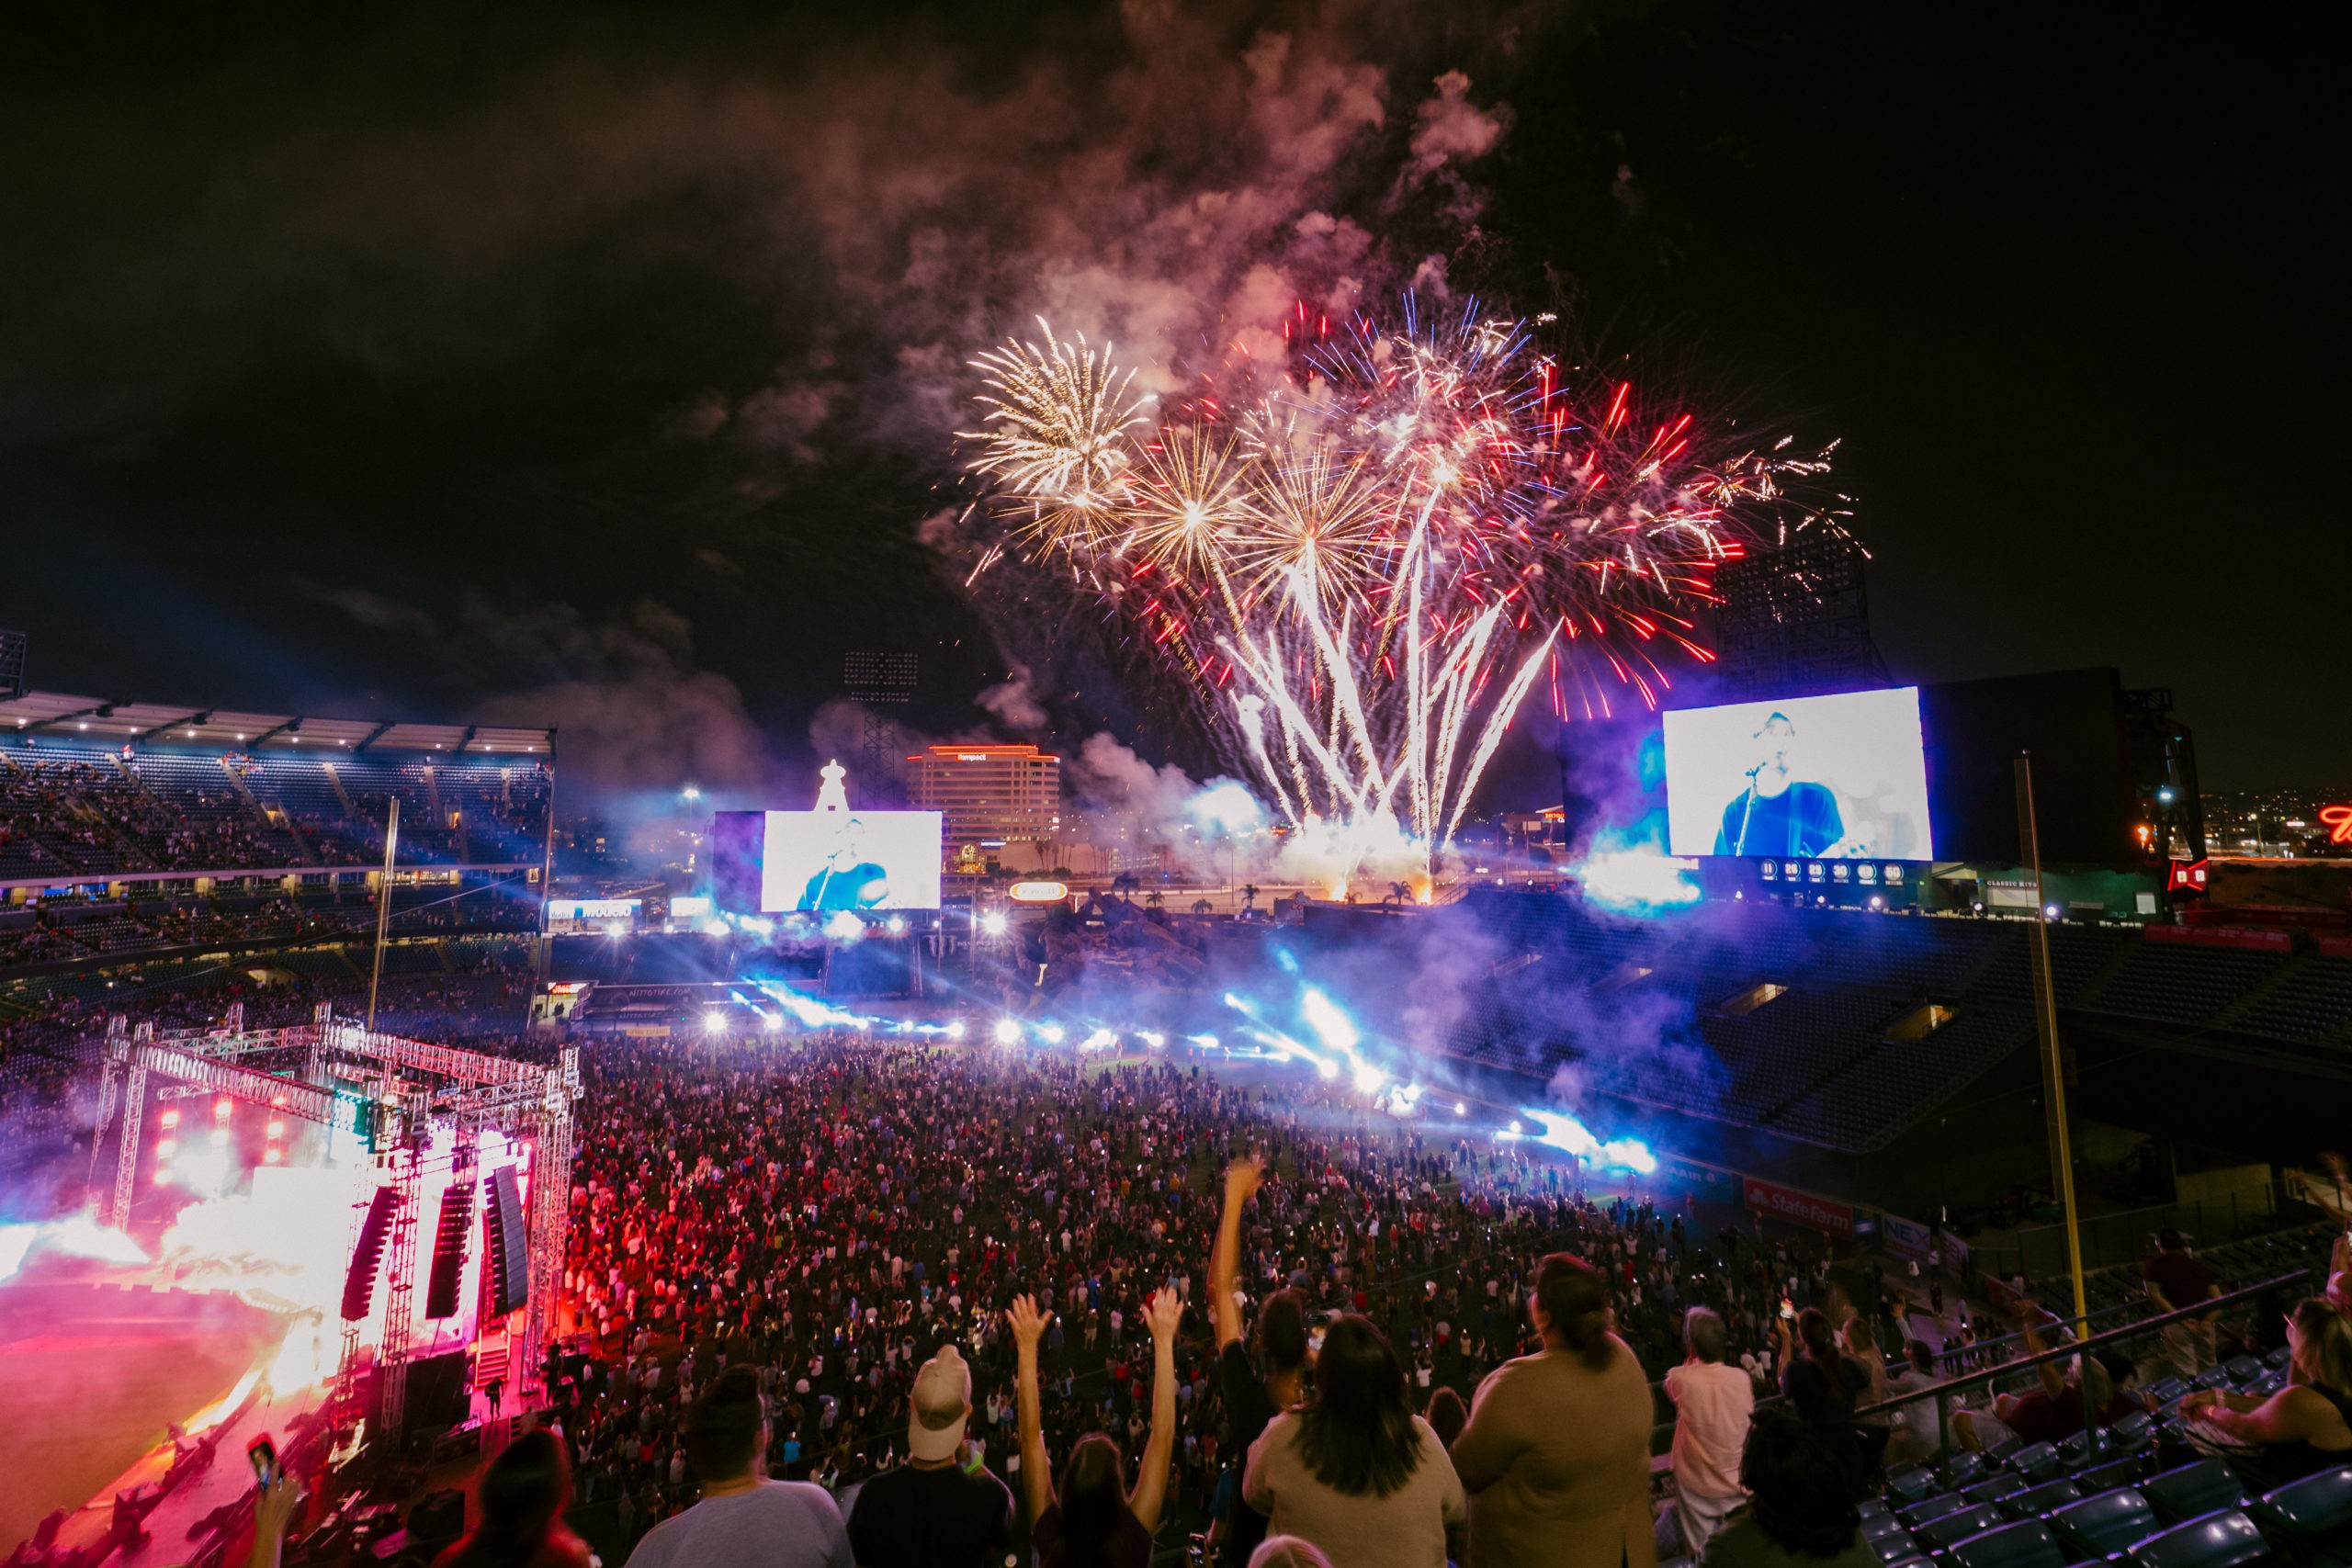 'You're noticed by God. You're loved by God': SoCal Harvest celebrates first in-person crusade post-pandemic with 6,000+ professions of faith